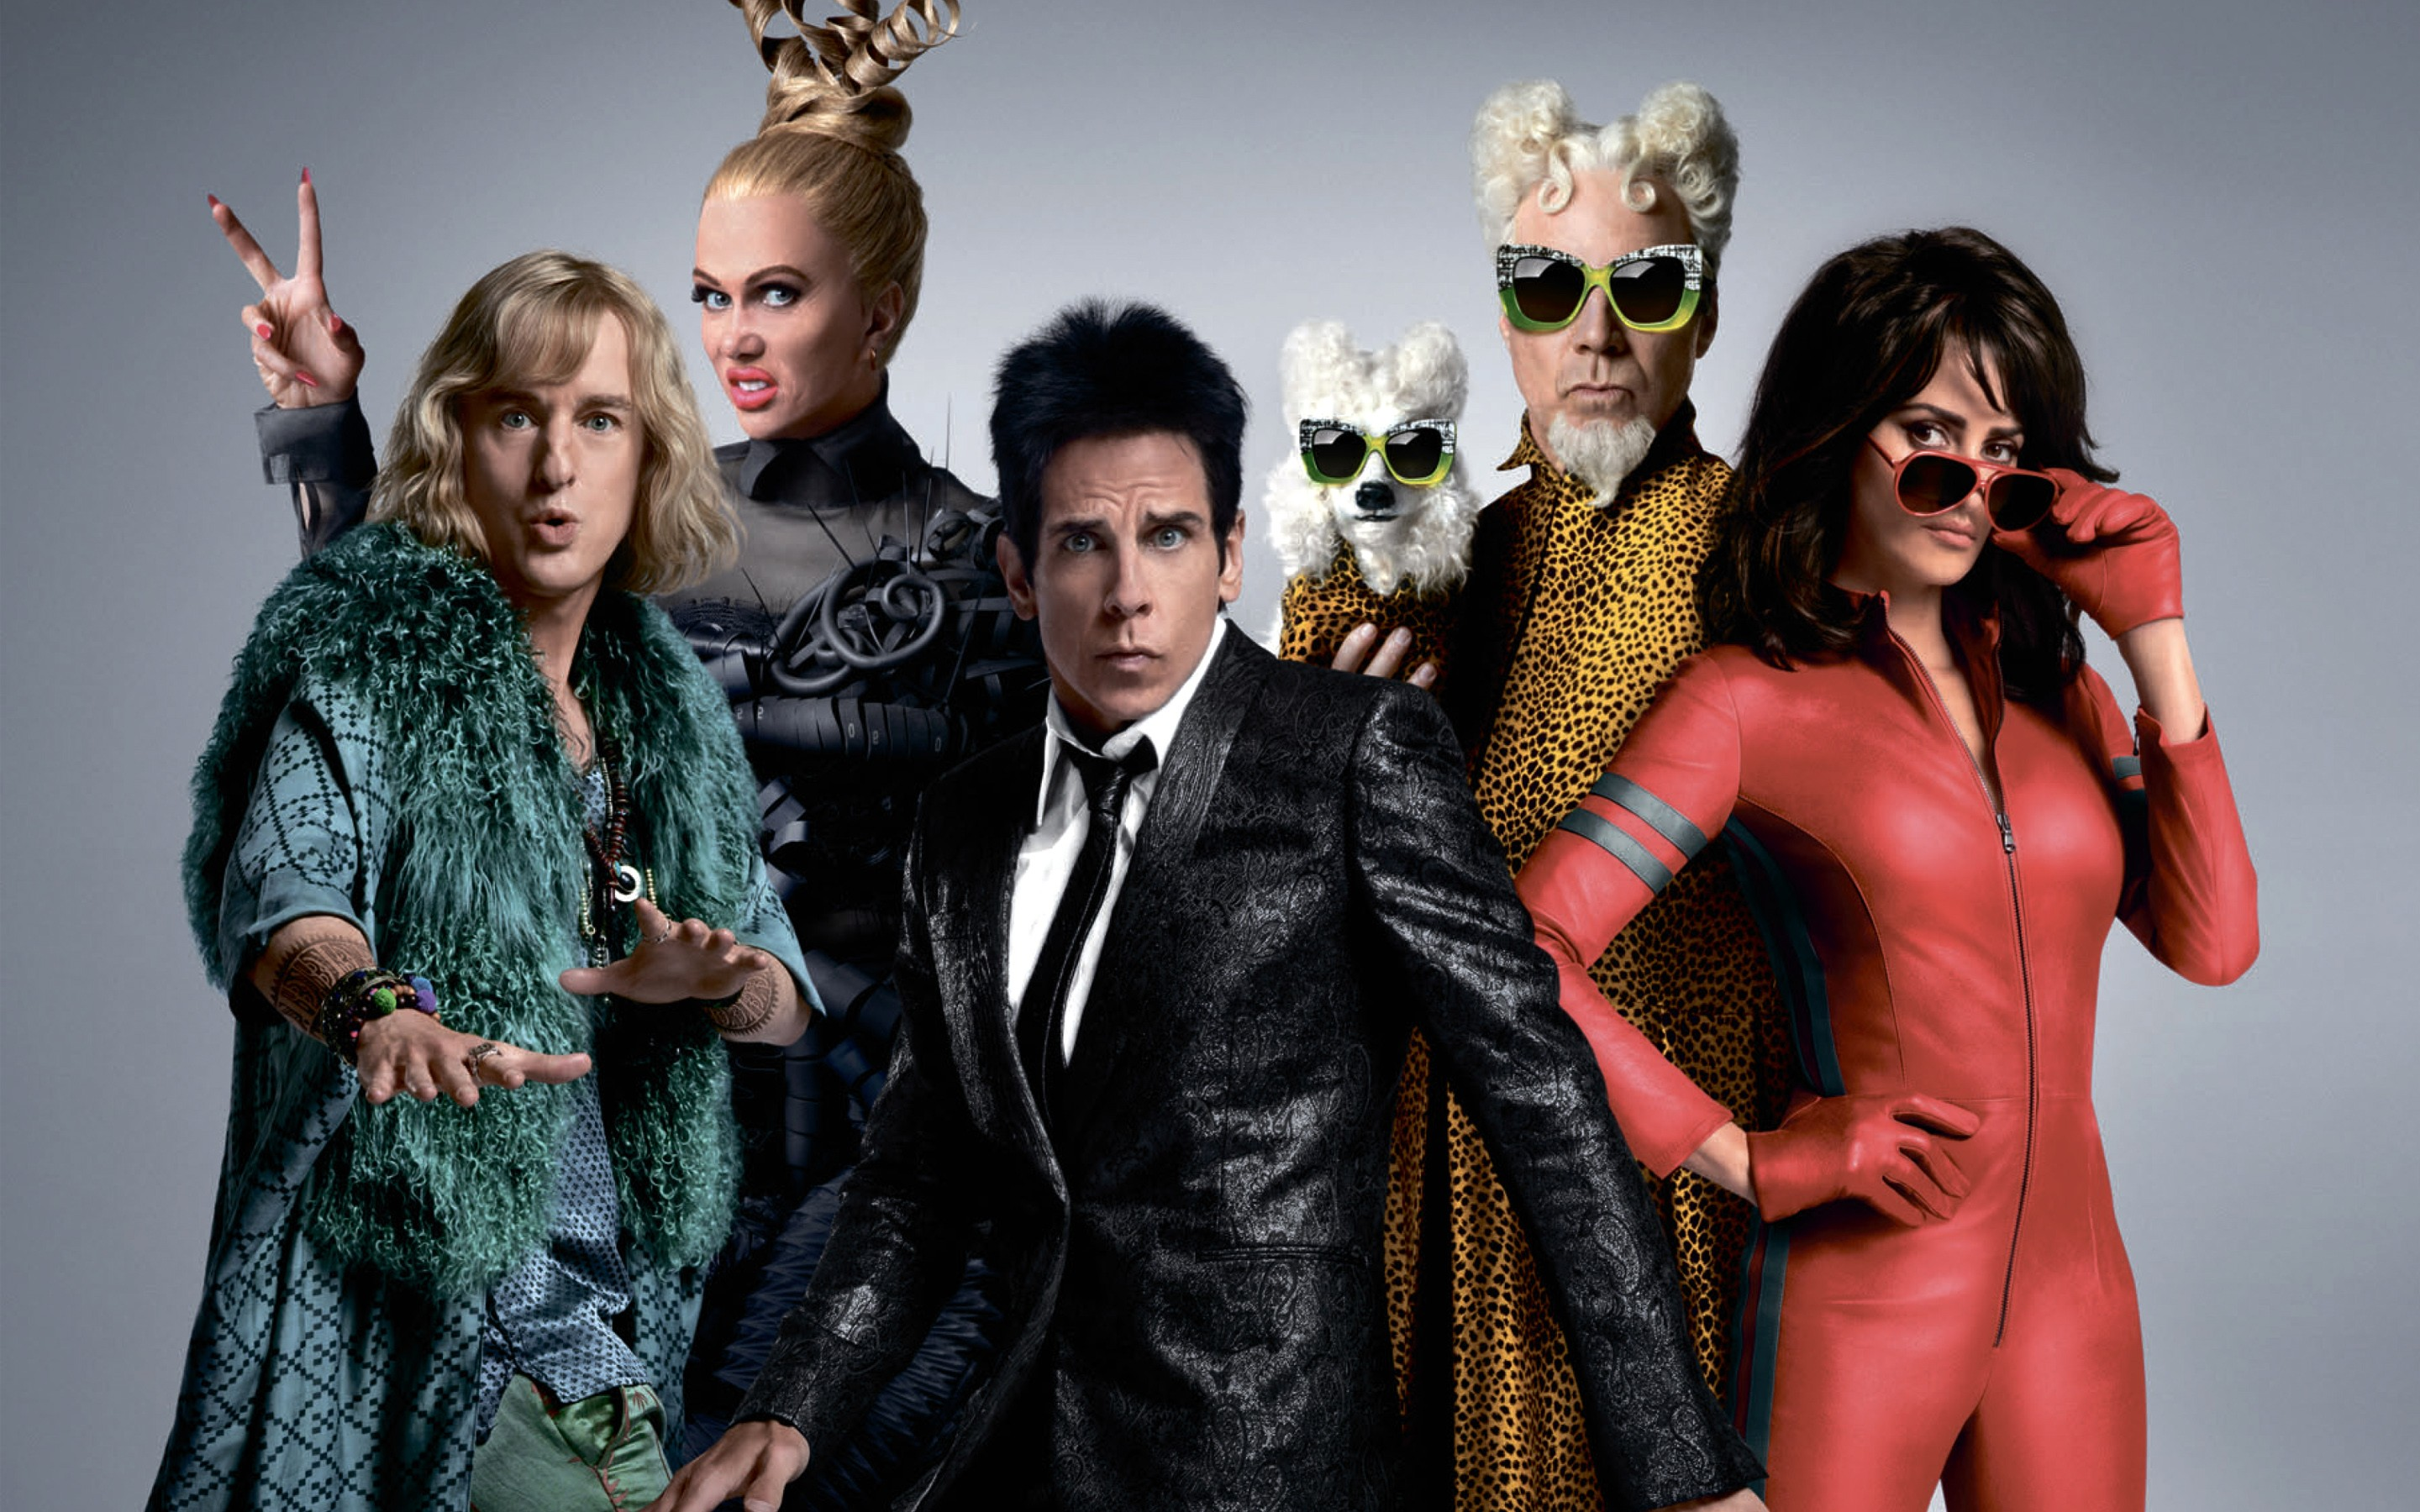 Zoolander 2 svg stock Page 1 | Zoolander 2 HD Wallpapers svg stock